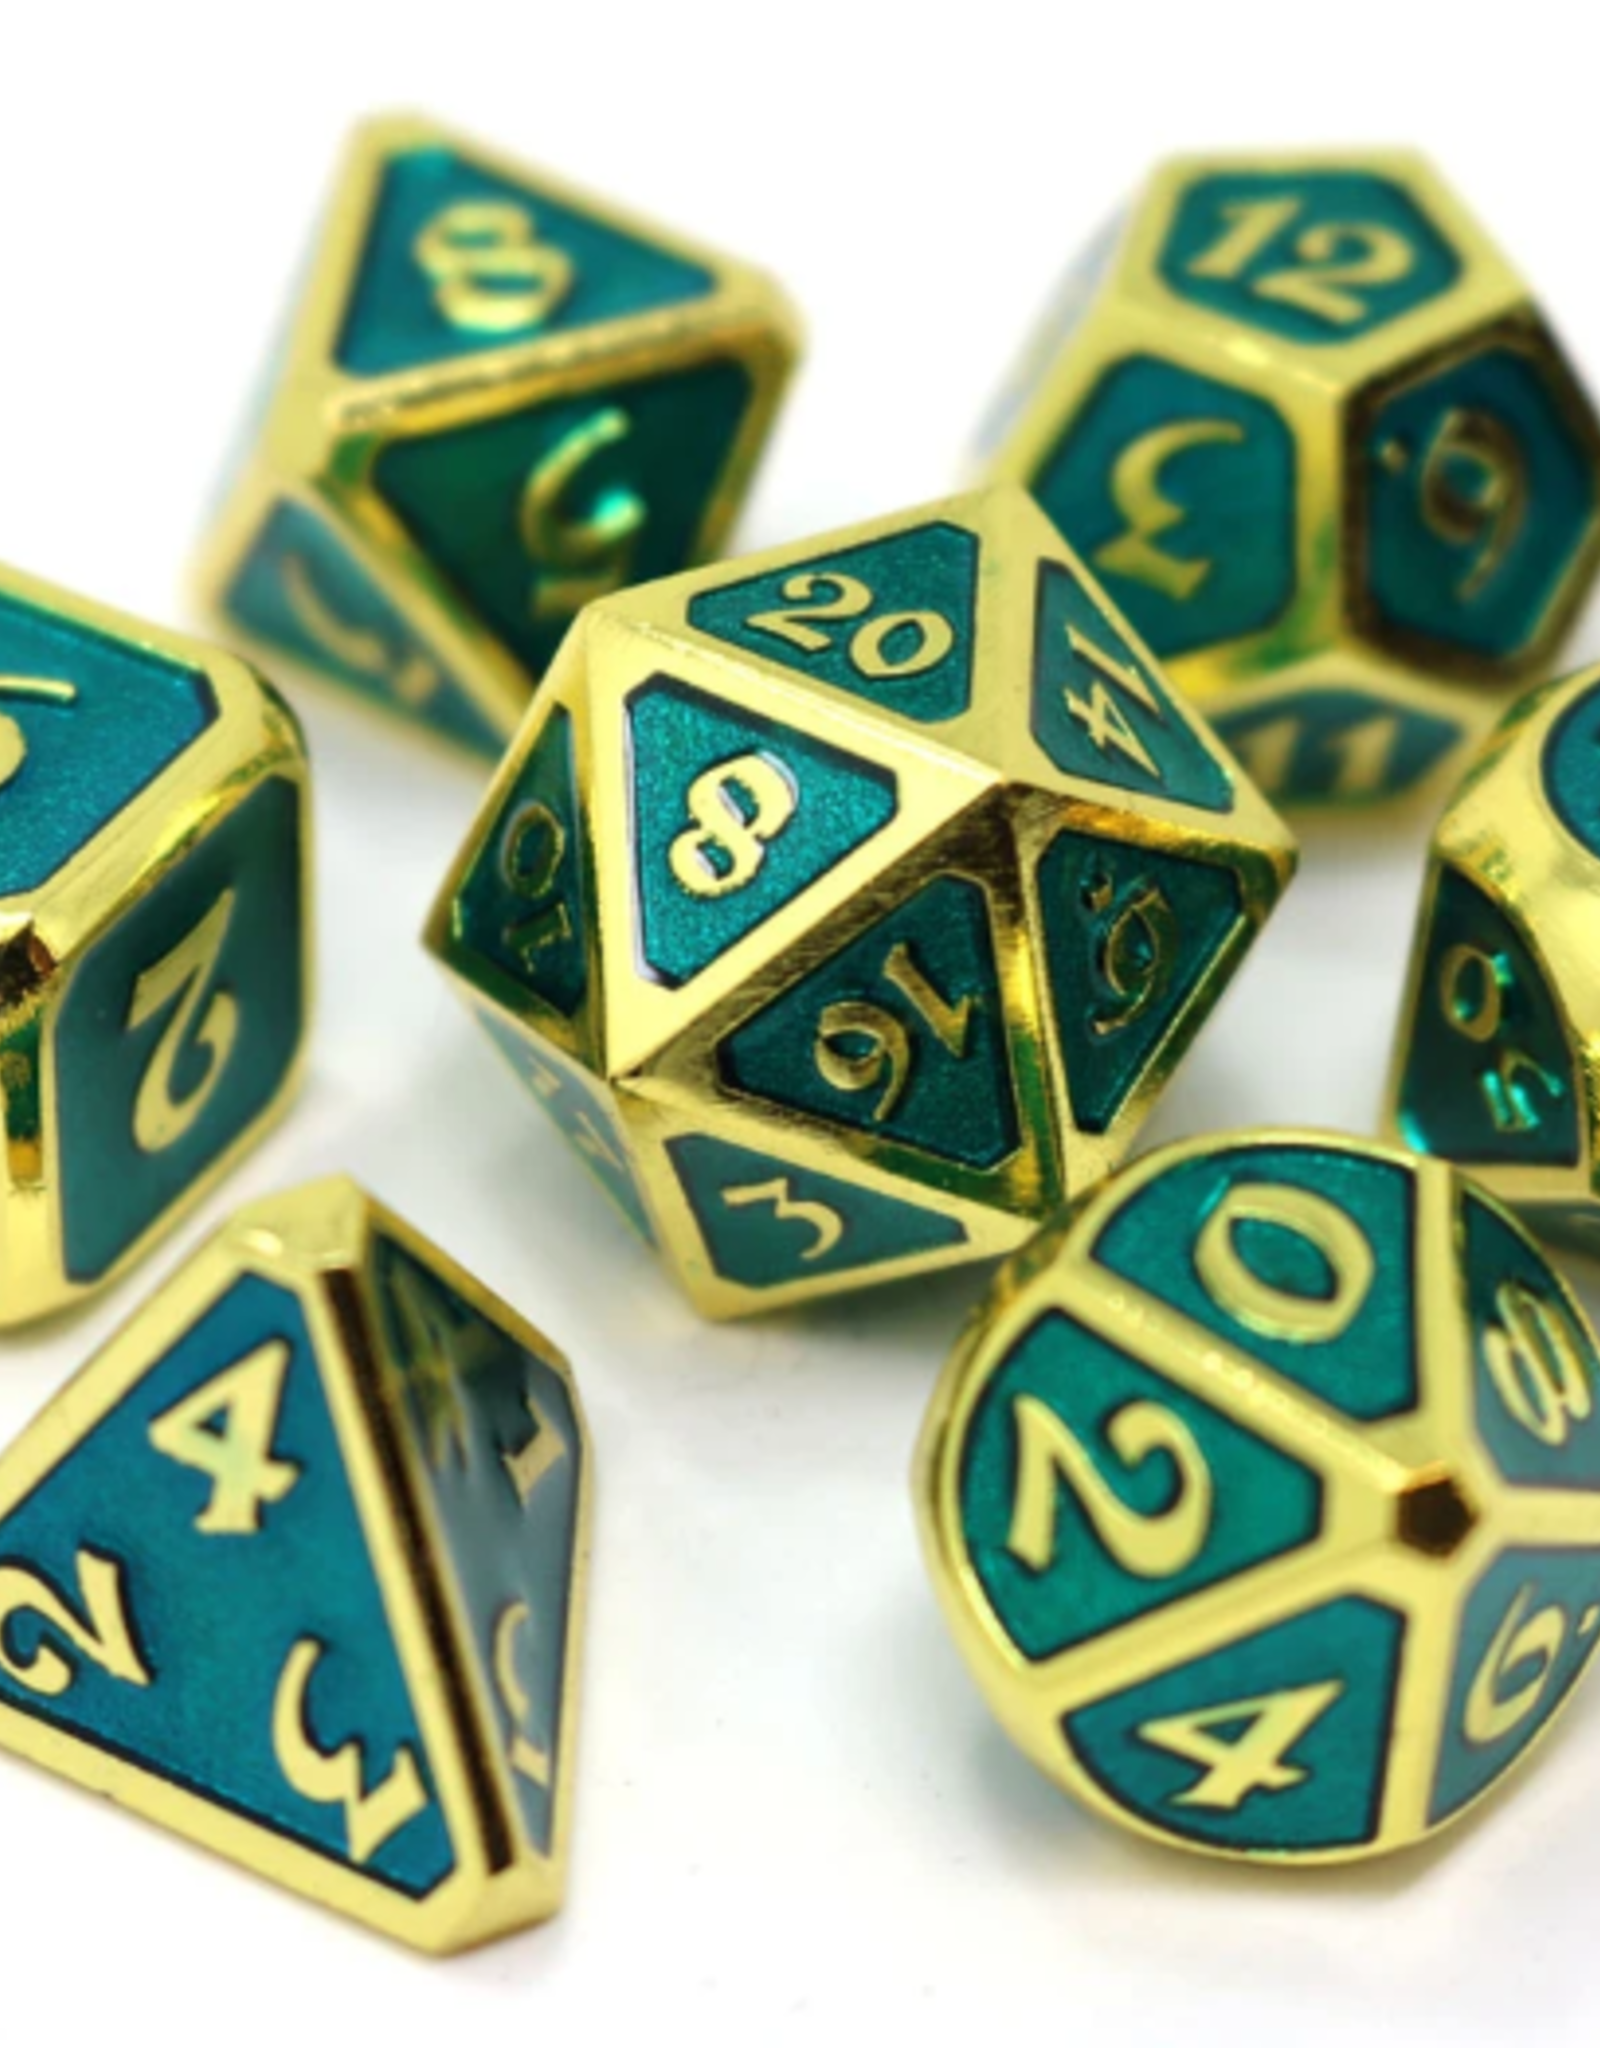 Die Hard Dice 7 Metal Dice Set Mythica Gold Aquamarine